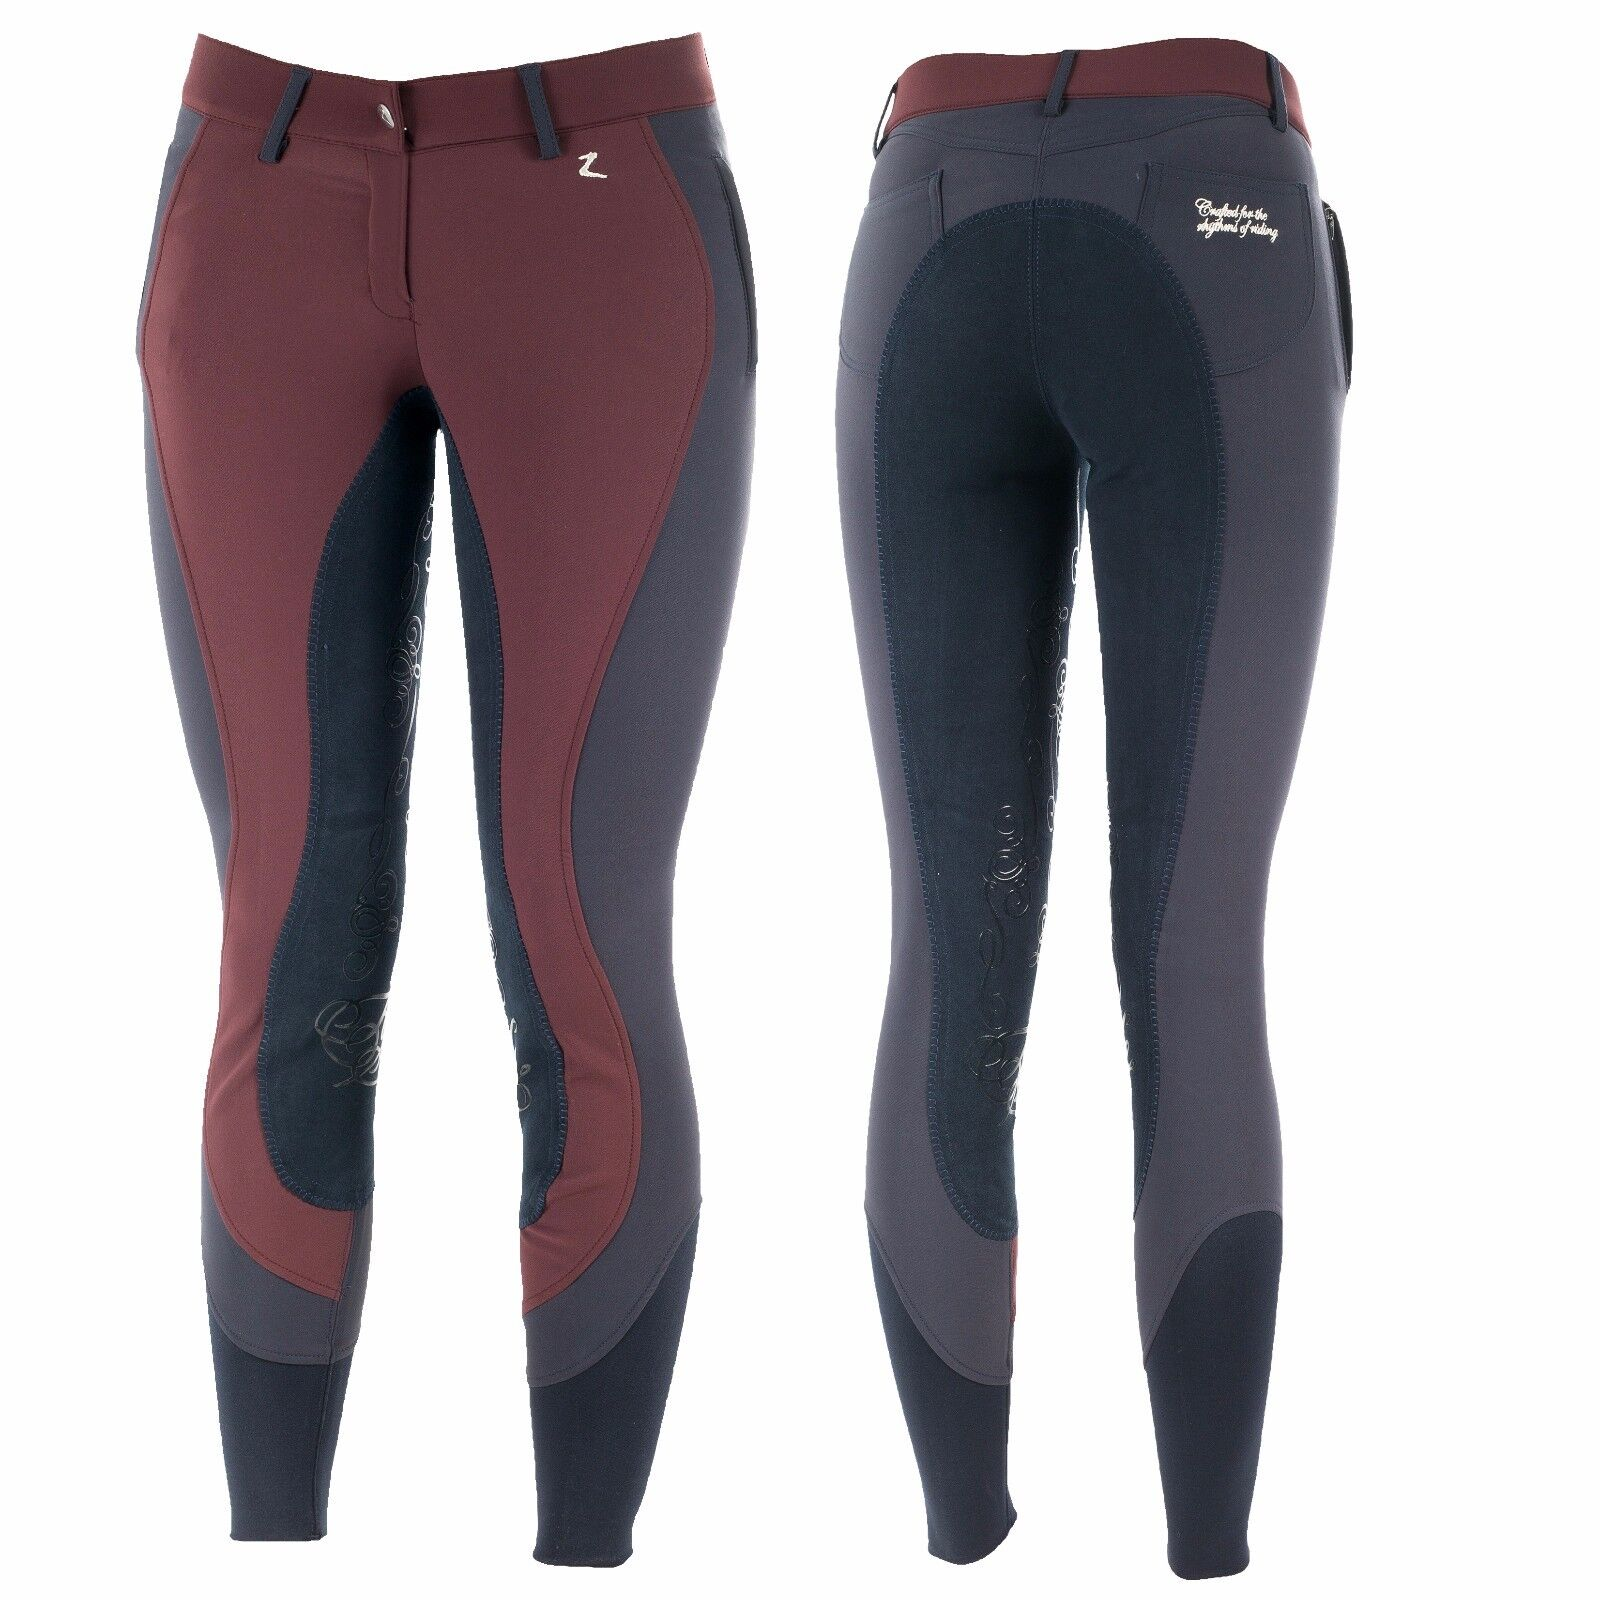 Horze Kiana Full Seat Breeches in Maroon/Navy